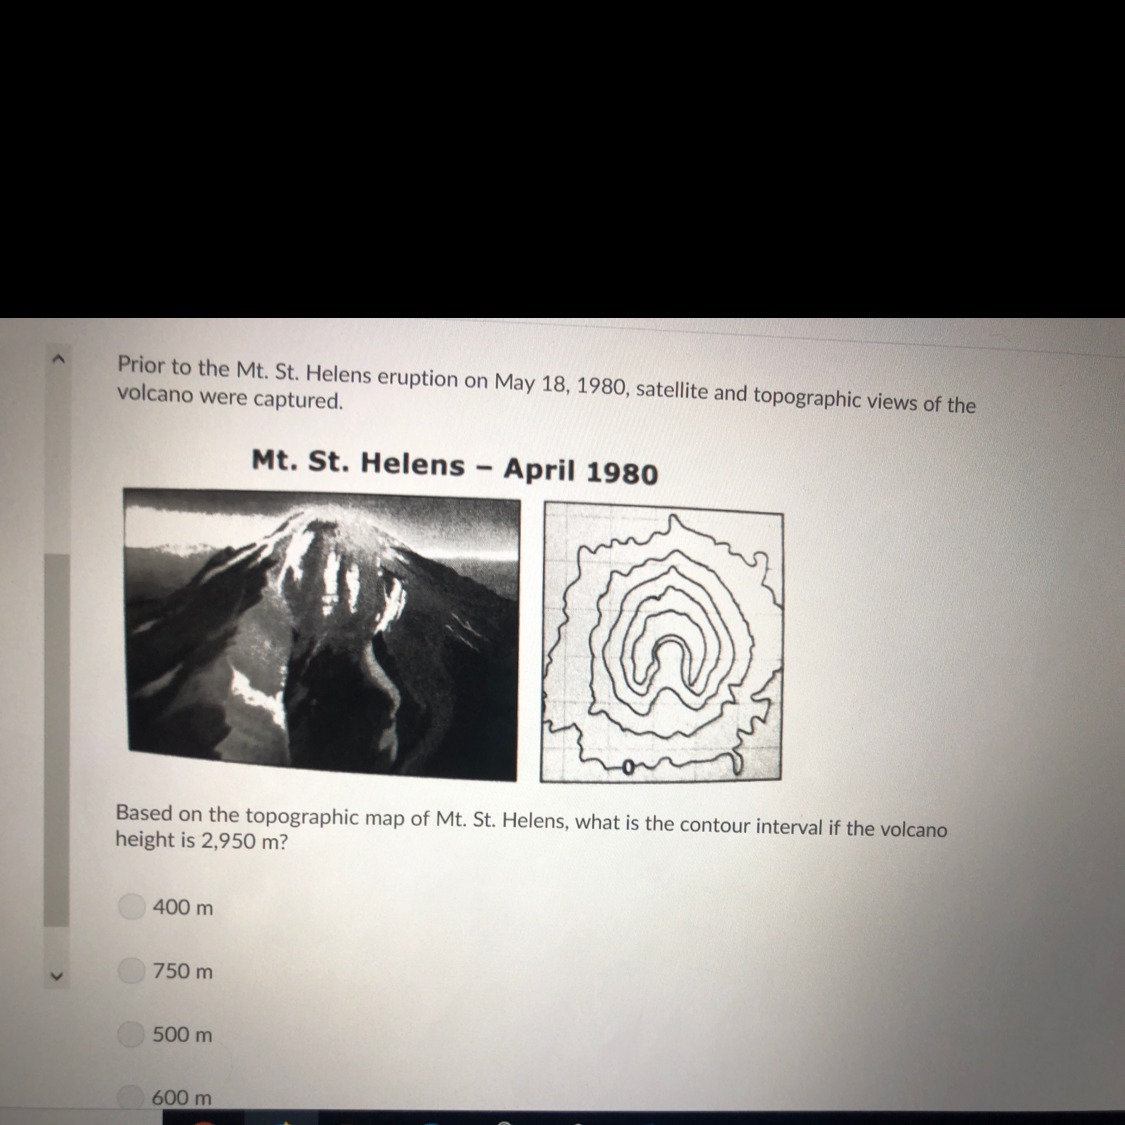 Based On The Topographic Map Of Mt St Helens What Is